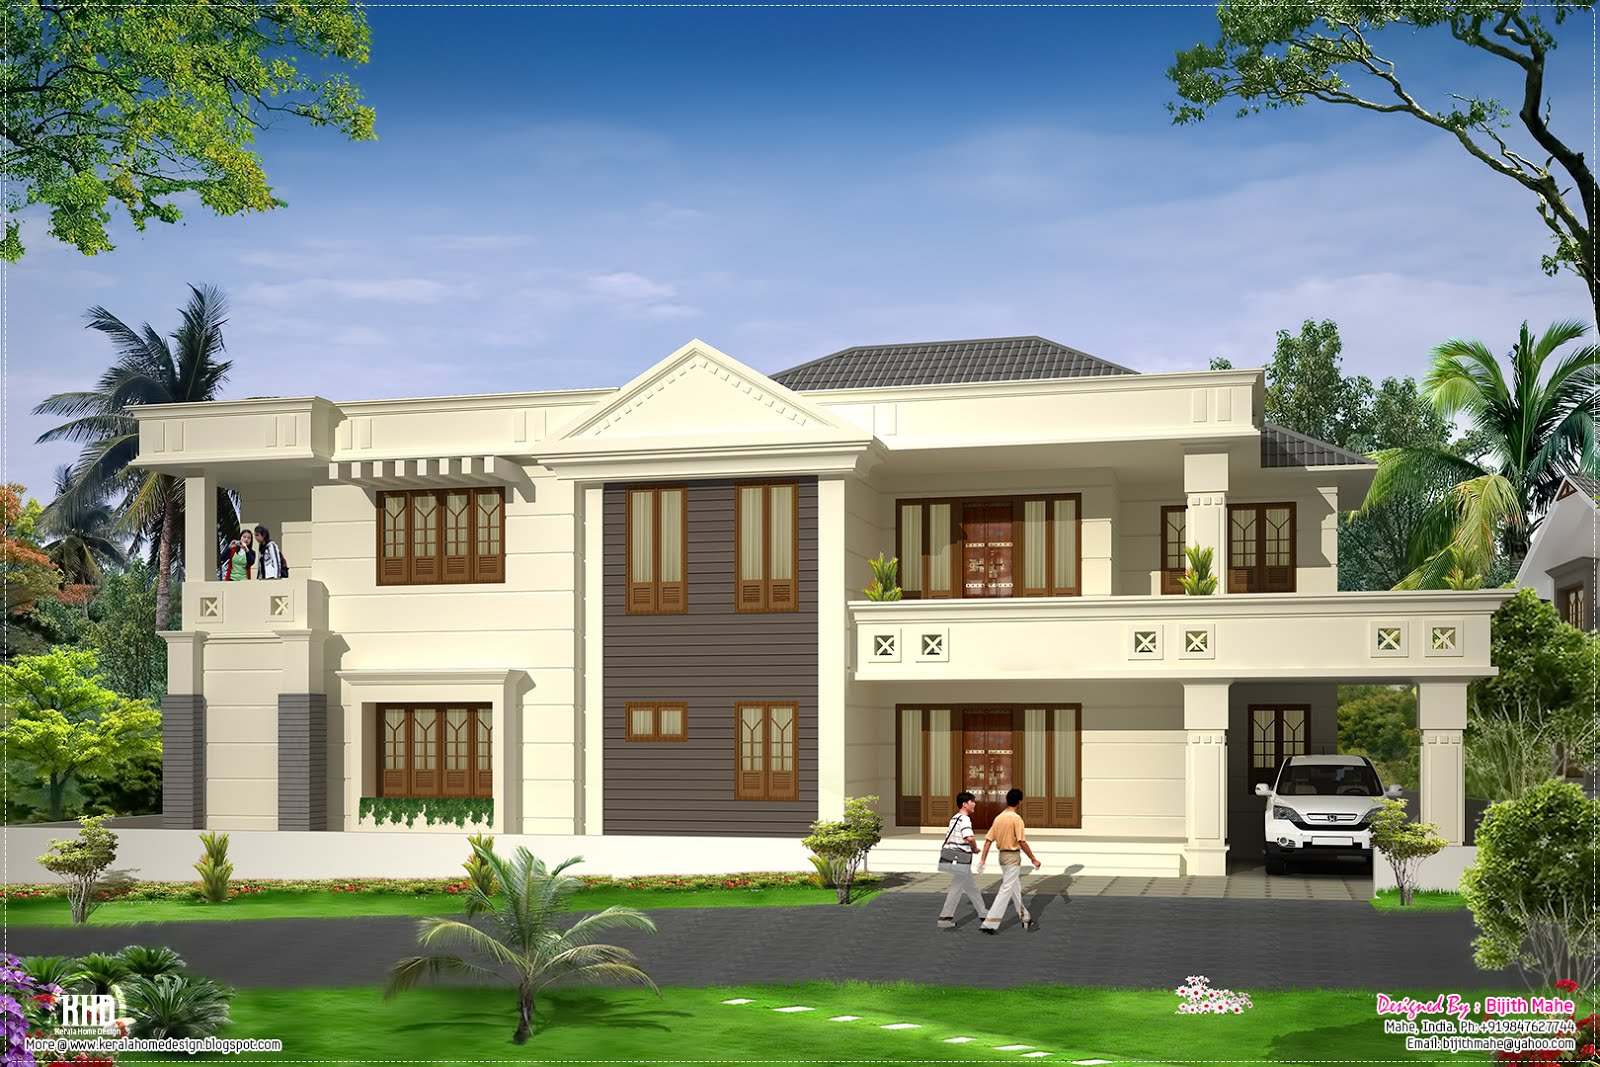 Modern luxury home design kerala home design and floor plans for Luxury home designers